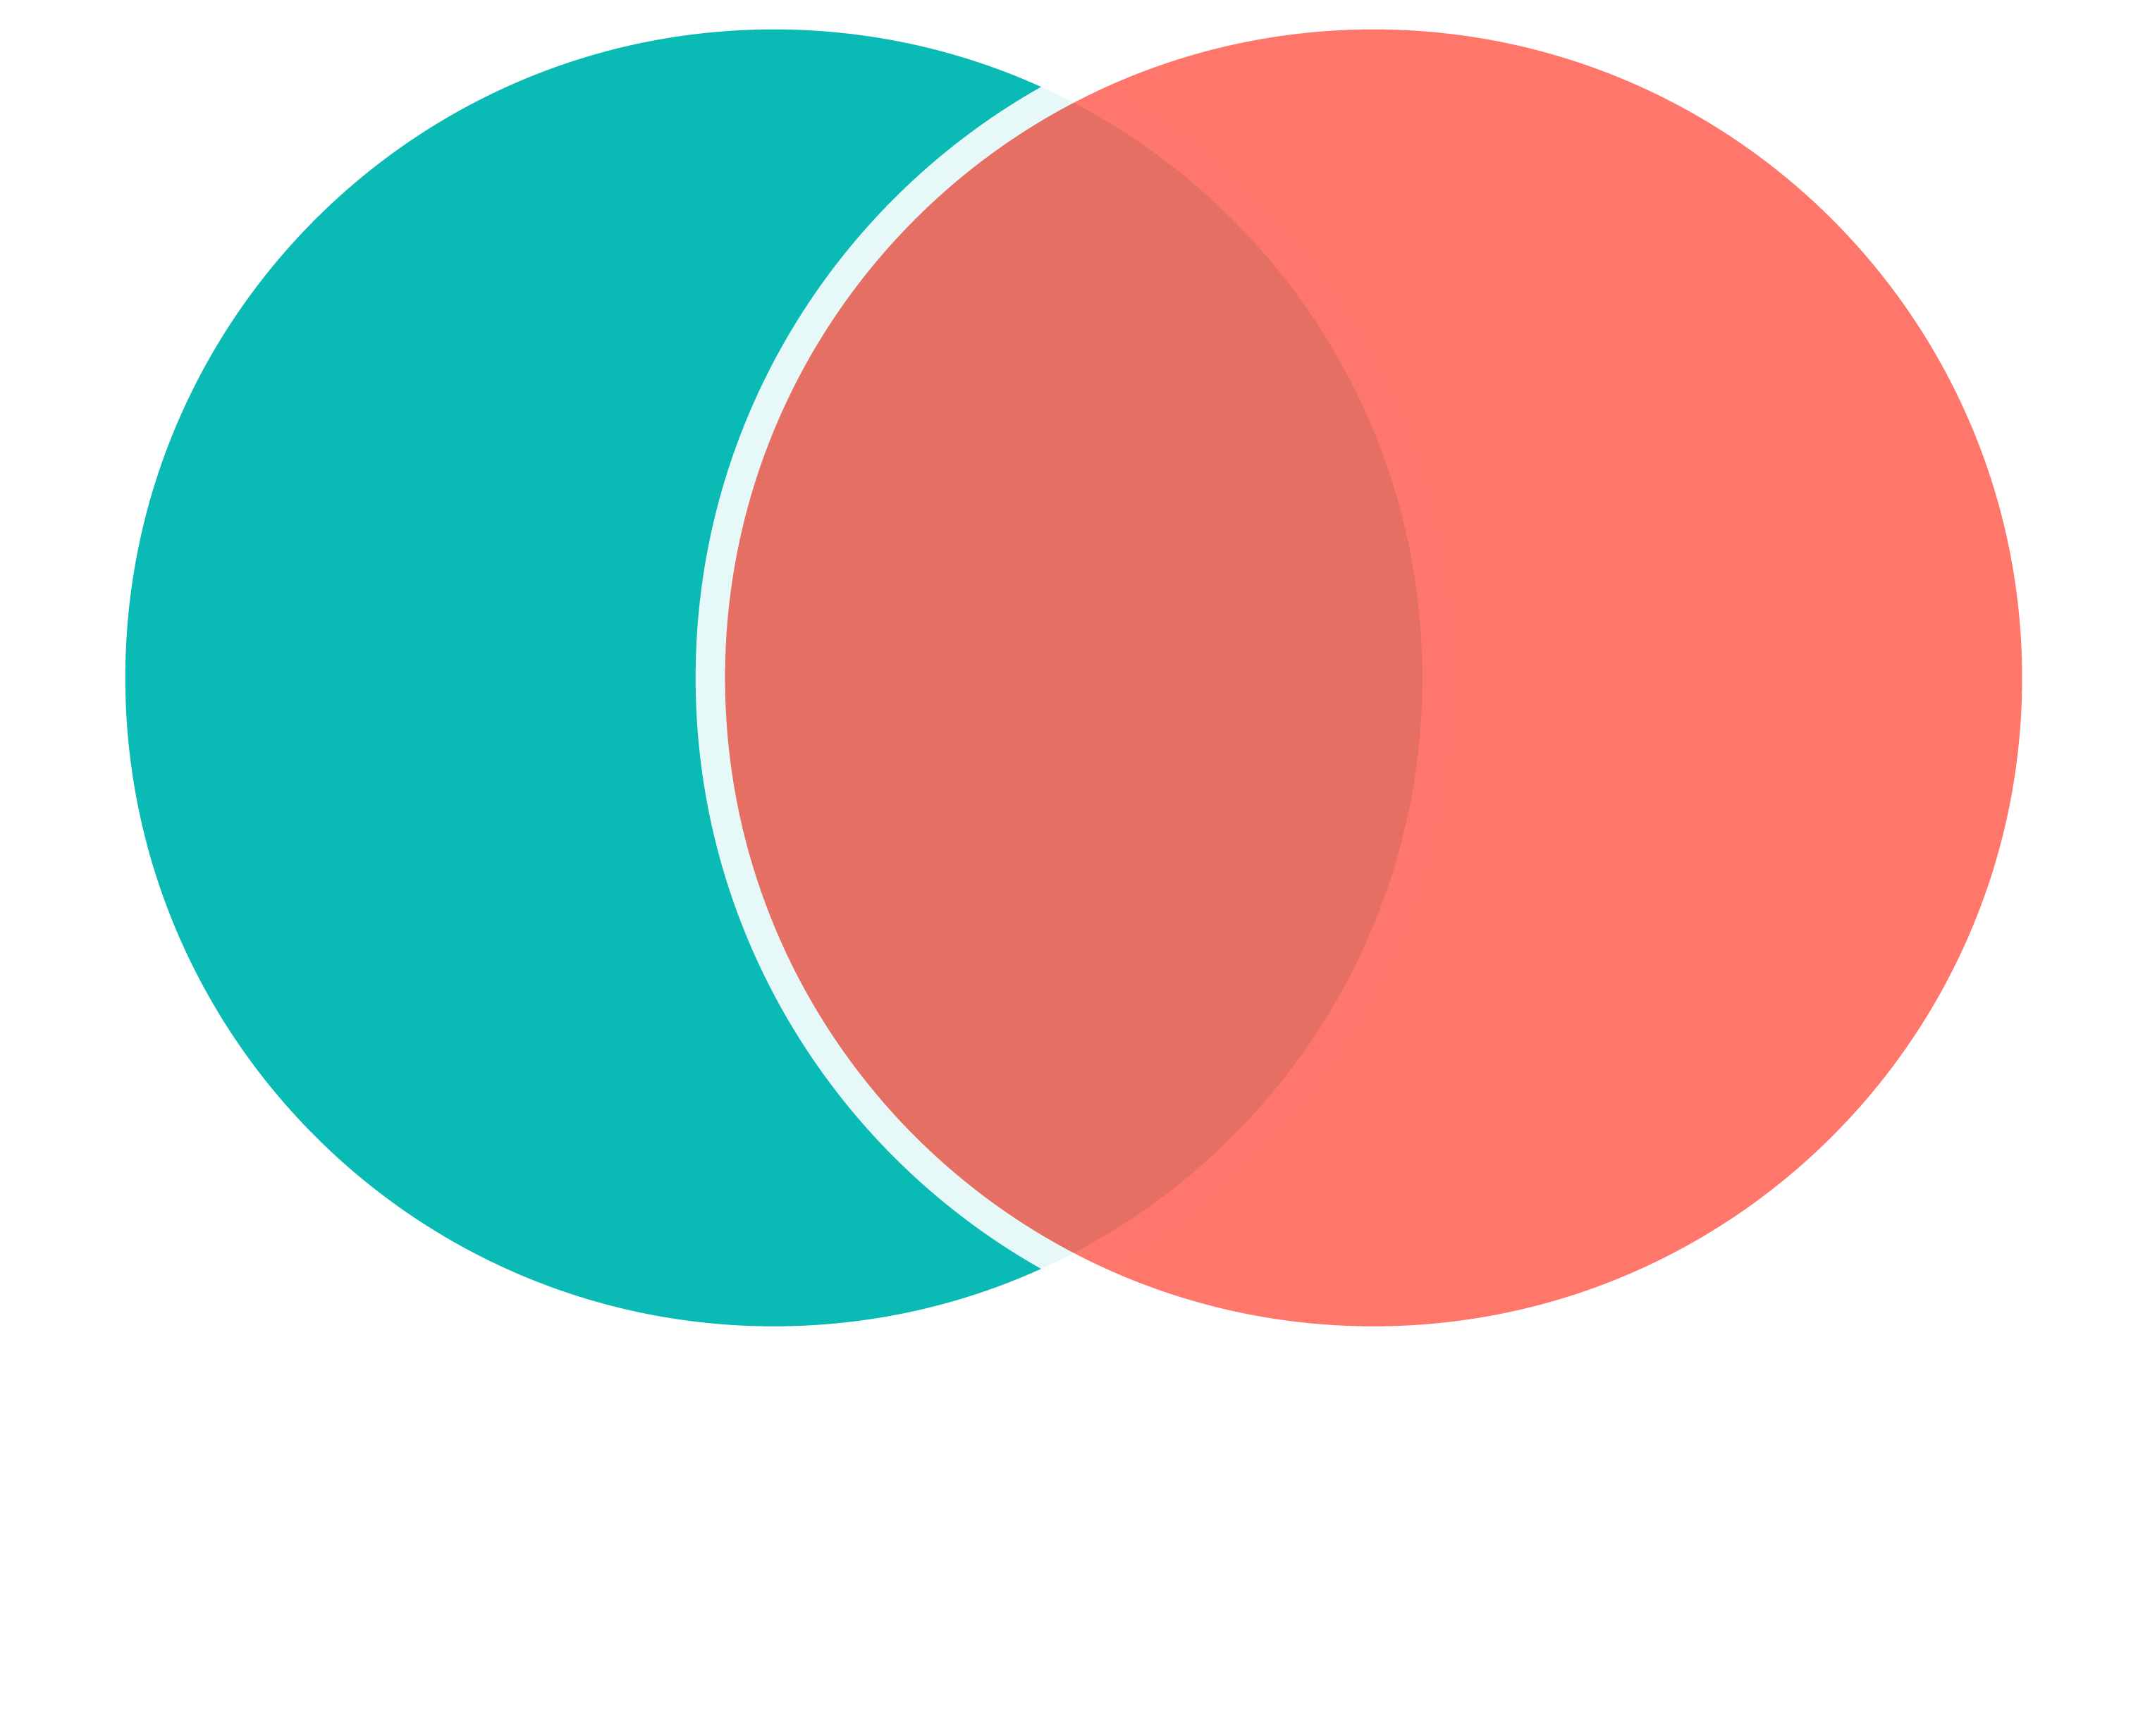 One Visibility